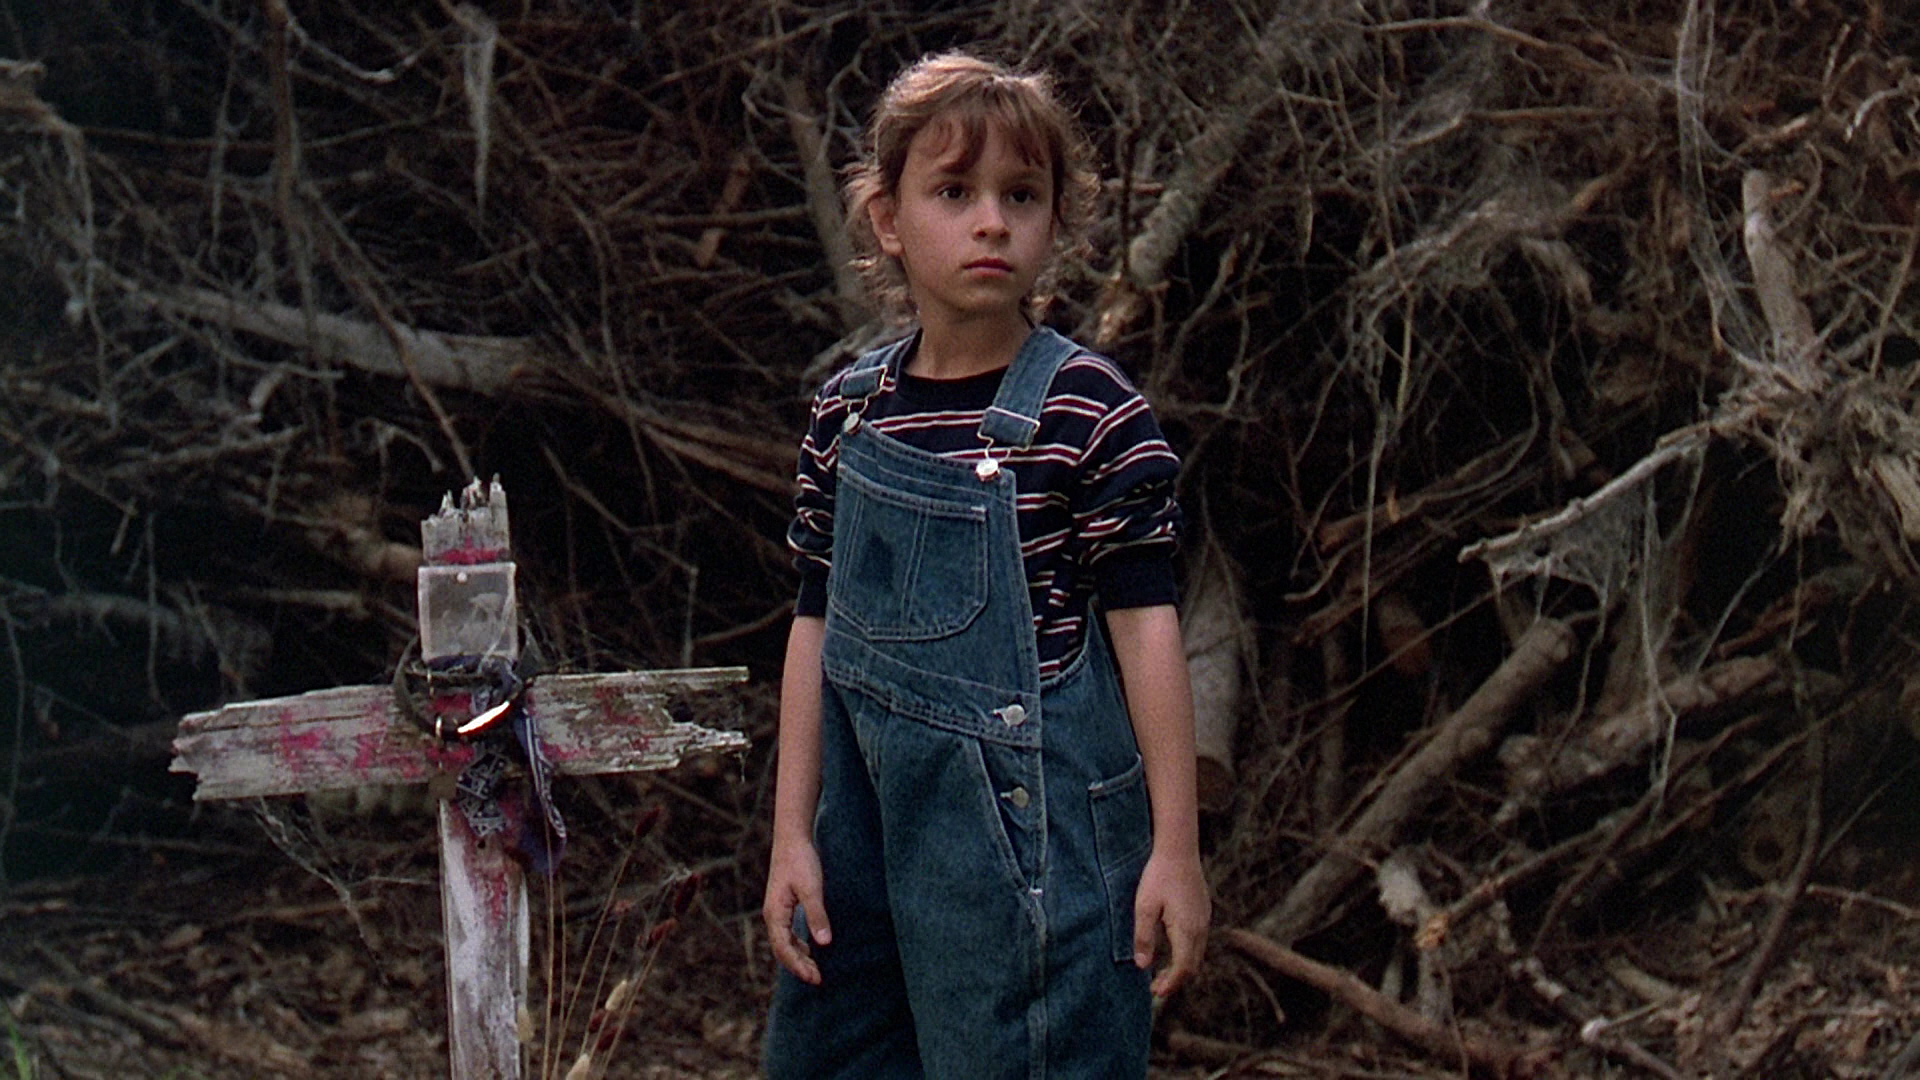 Blaze Berdahl, Pet Sematary, Ellie Creed, Stephen King